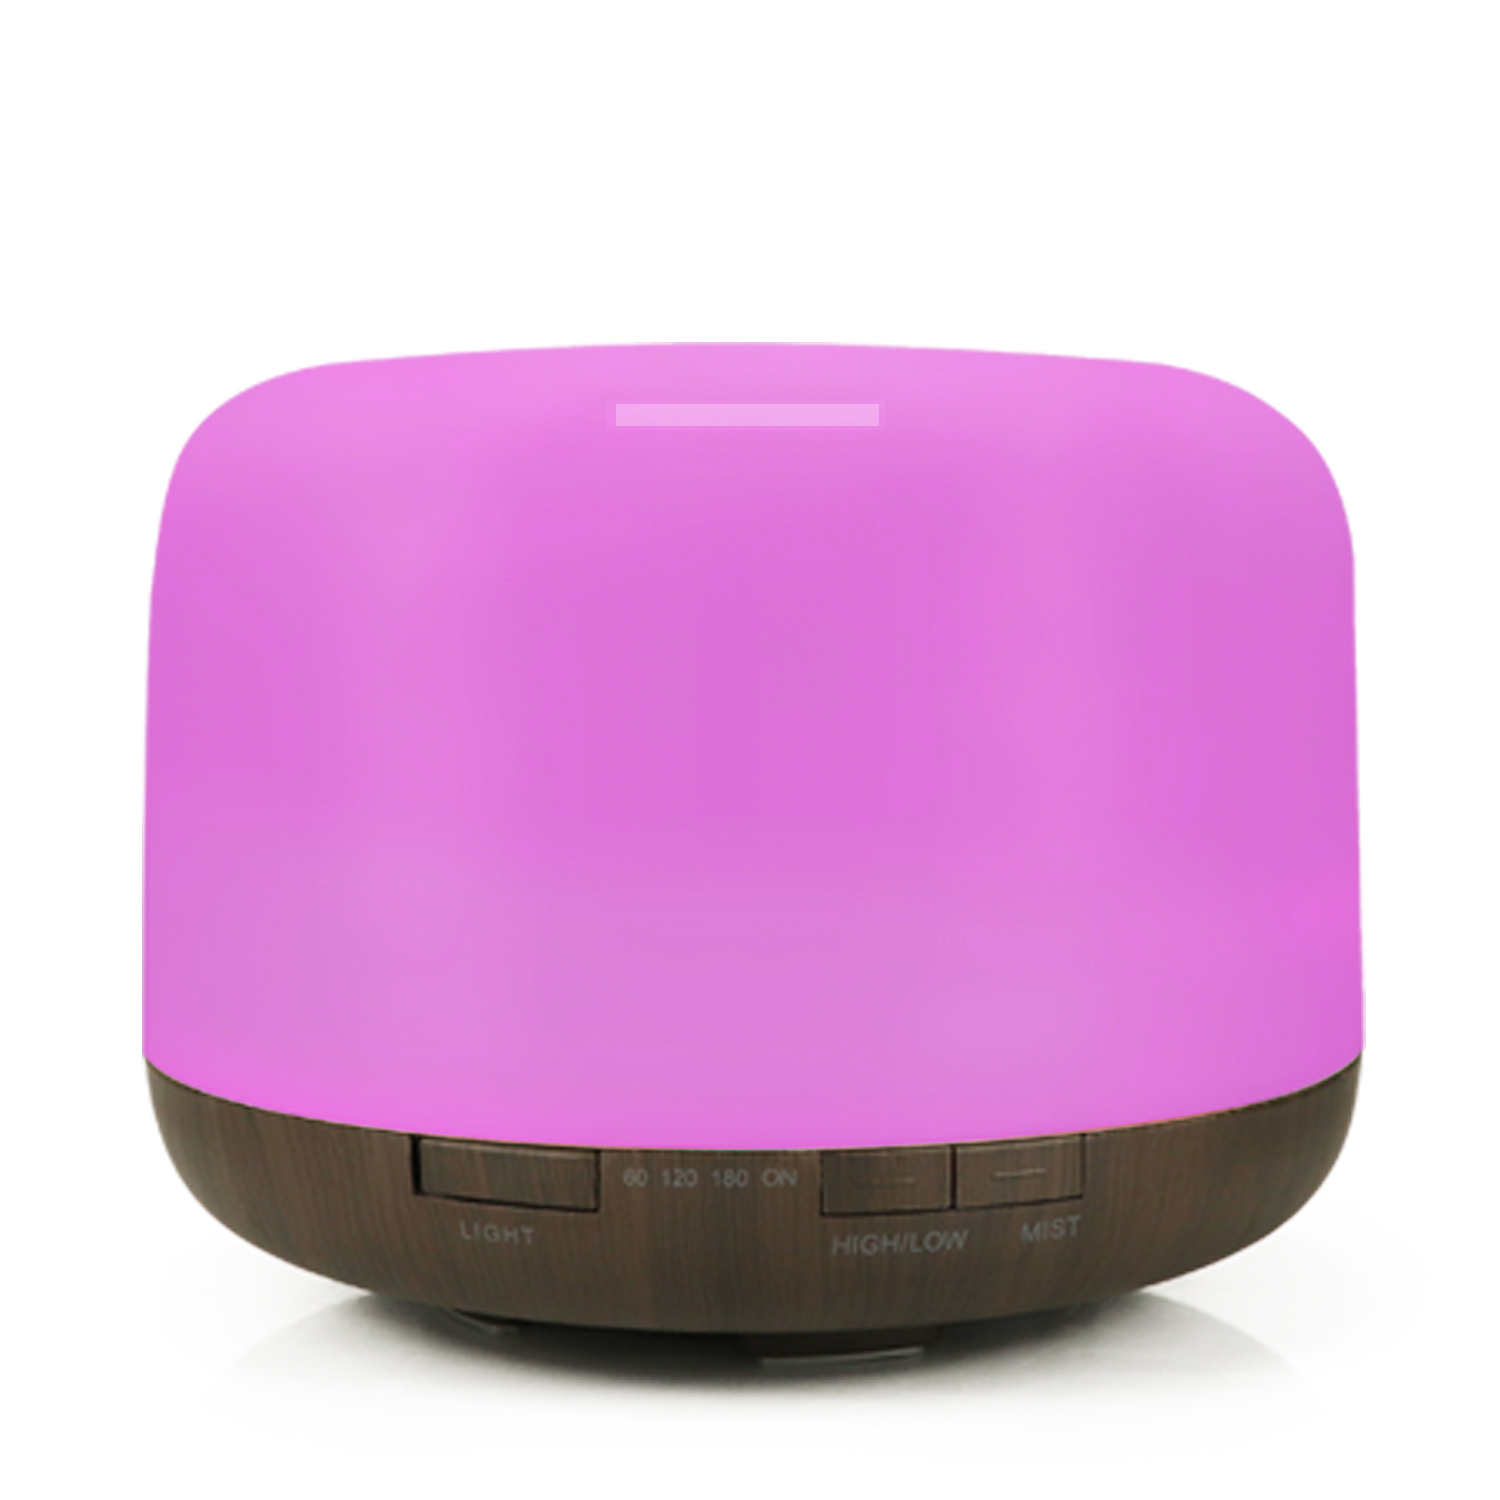 500ml Arom Essential Oil Diffuser Timing Ultrasonic Air Humidifier 7 Color LED Lights Air Diffuser Aromtherapy Mist Maker